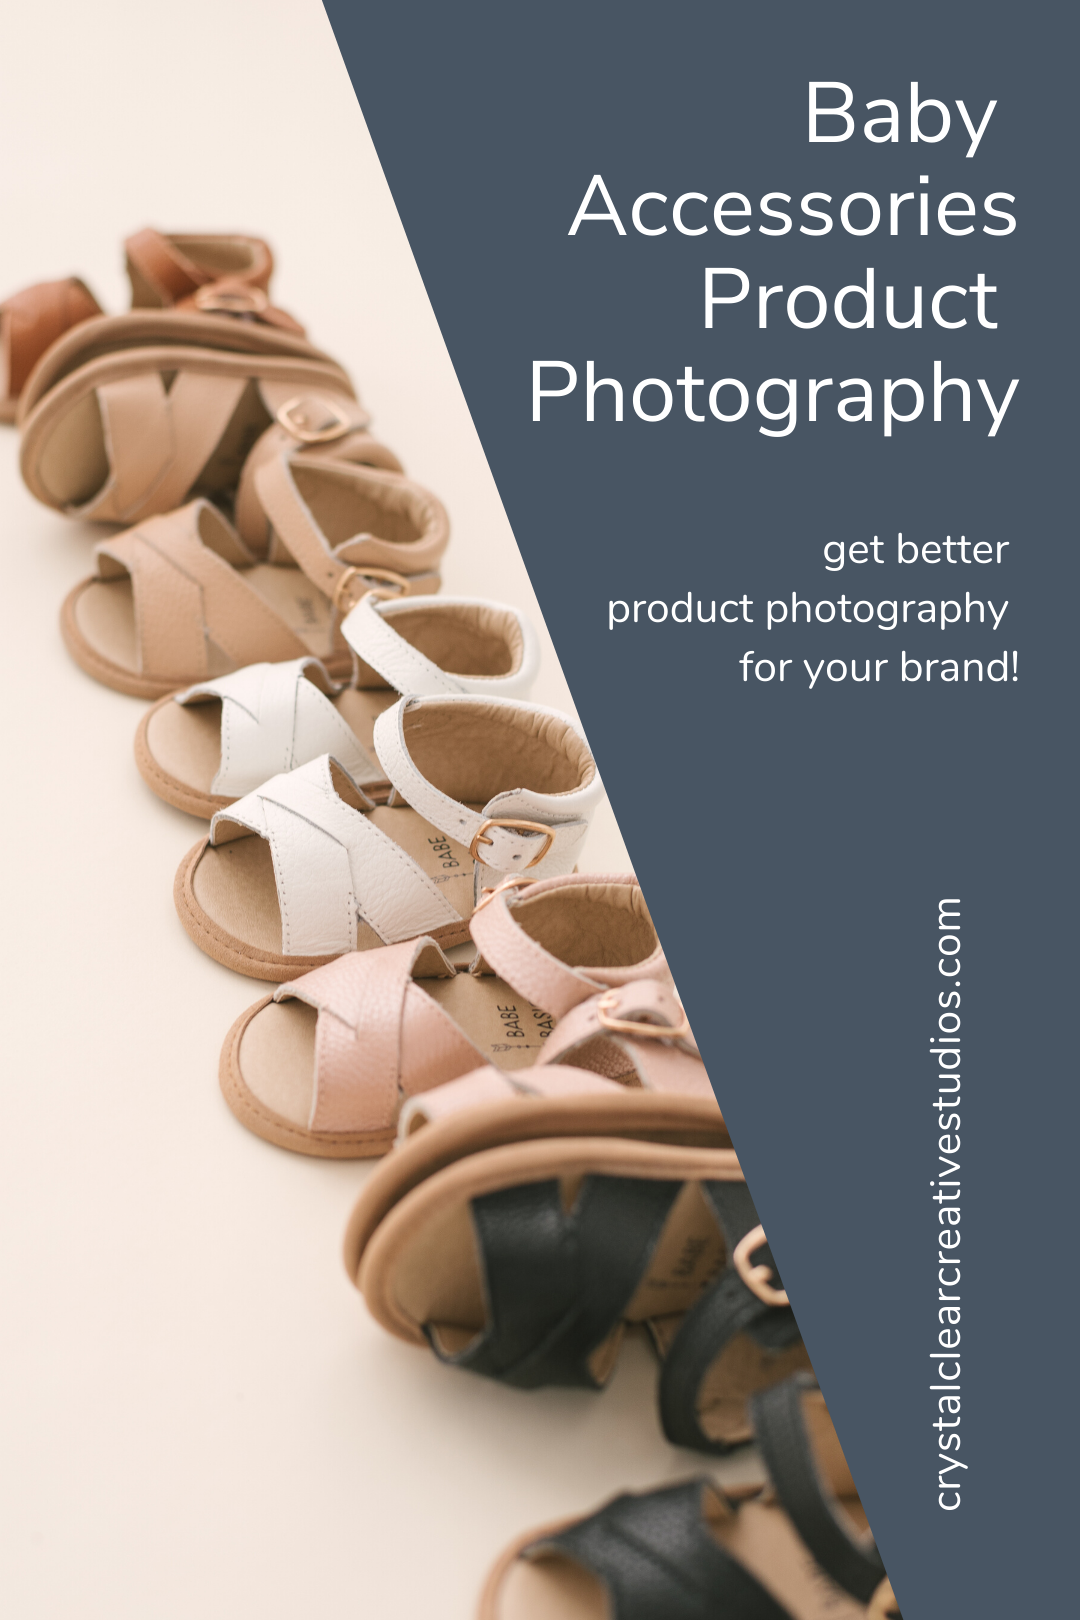 Baby Accessories Product Photography